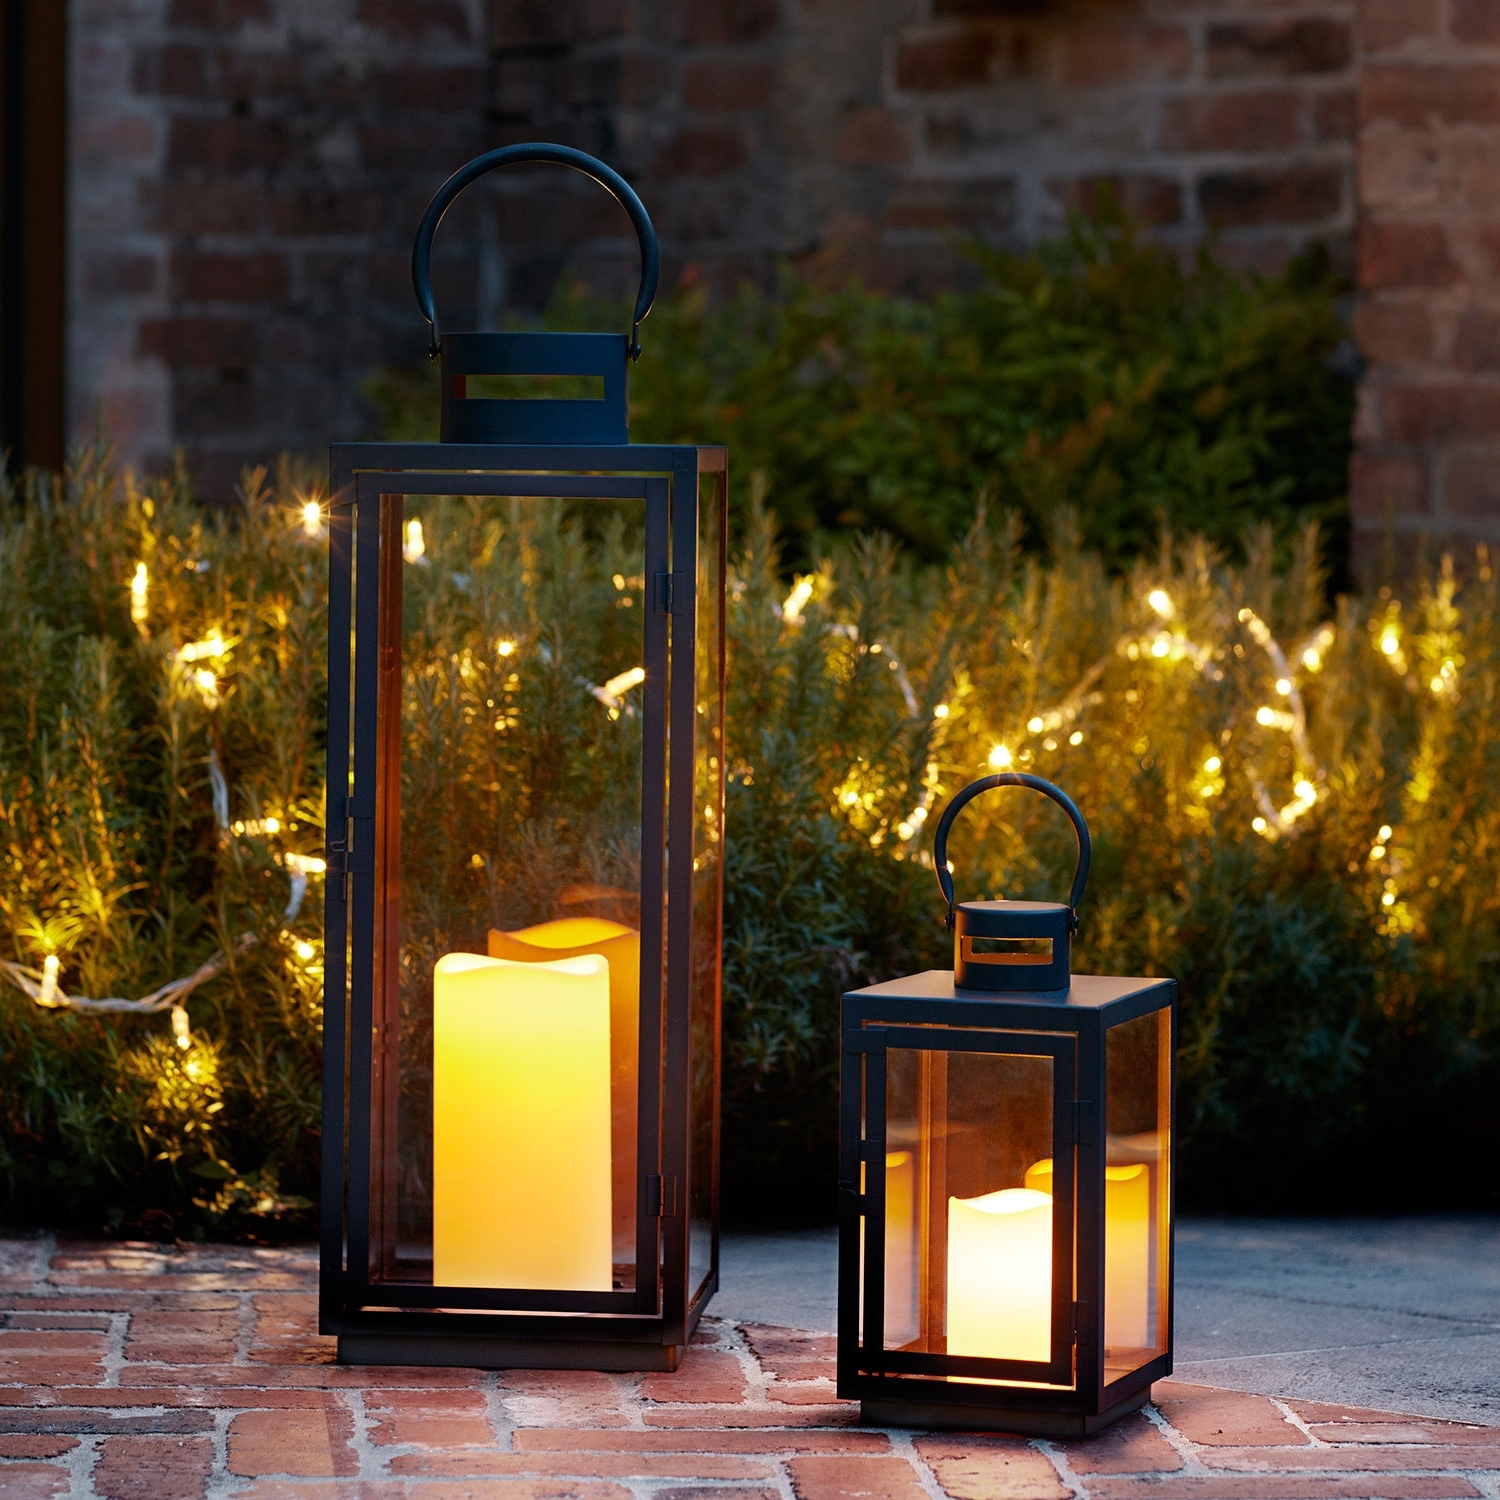 Outdoor Décor Candle Lanterns , Garden Lighting , Garden & Patio Inside Favorite Outdoor Candle Lanterns For Patio (View 15 of 20)